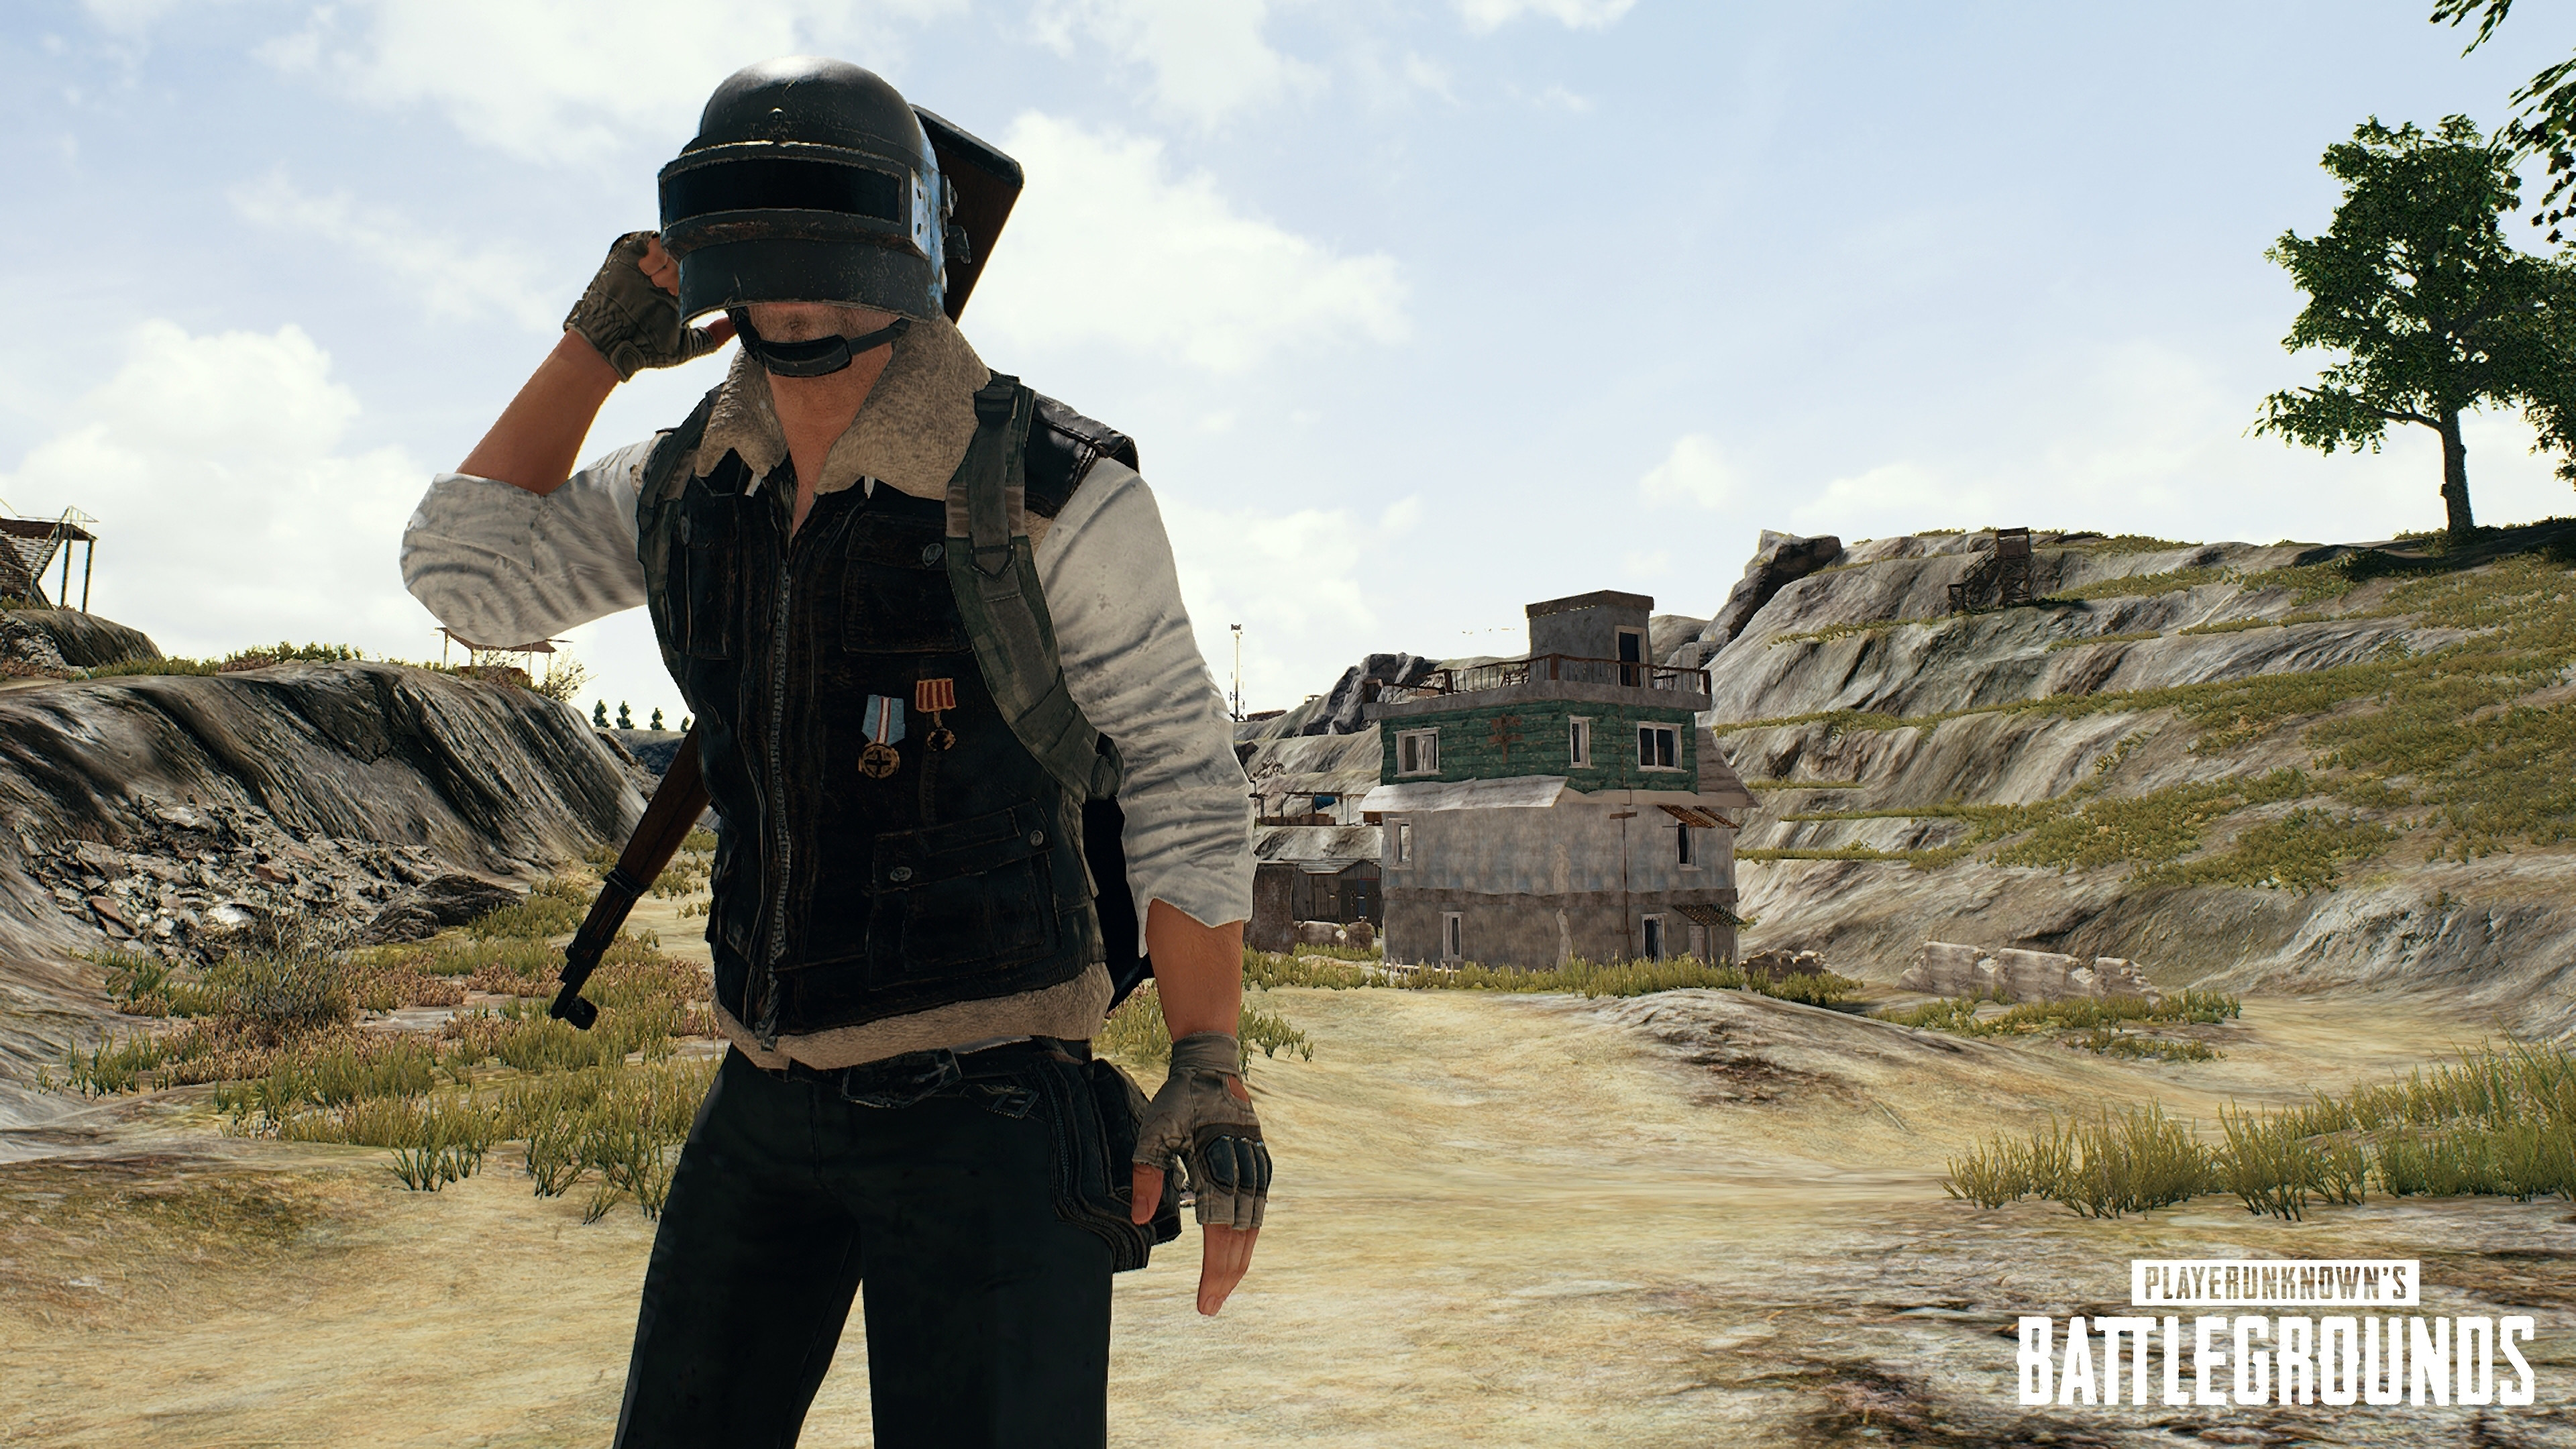 Pubg Wallpapers Hd Mobile: PUBG PUBG PlayerUnknown's Battlegrounds 4K Wallpaper